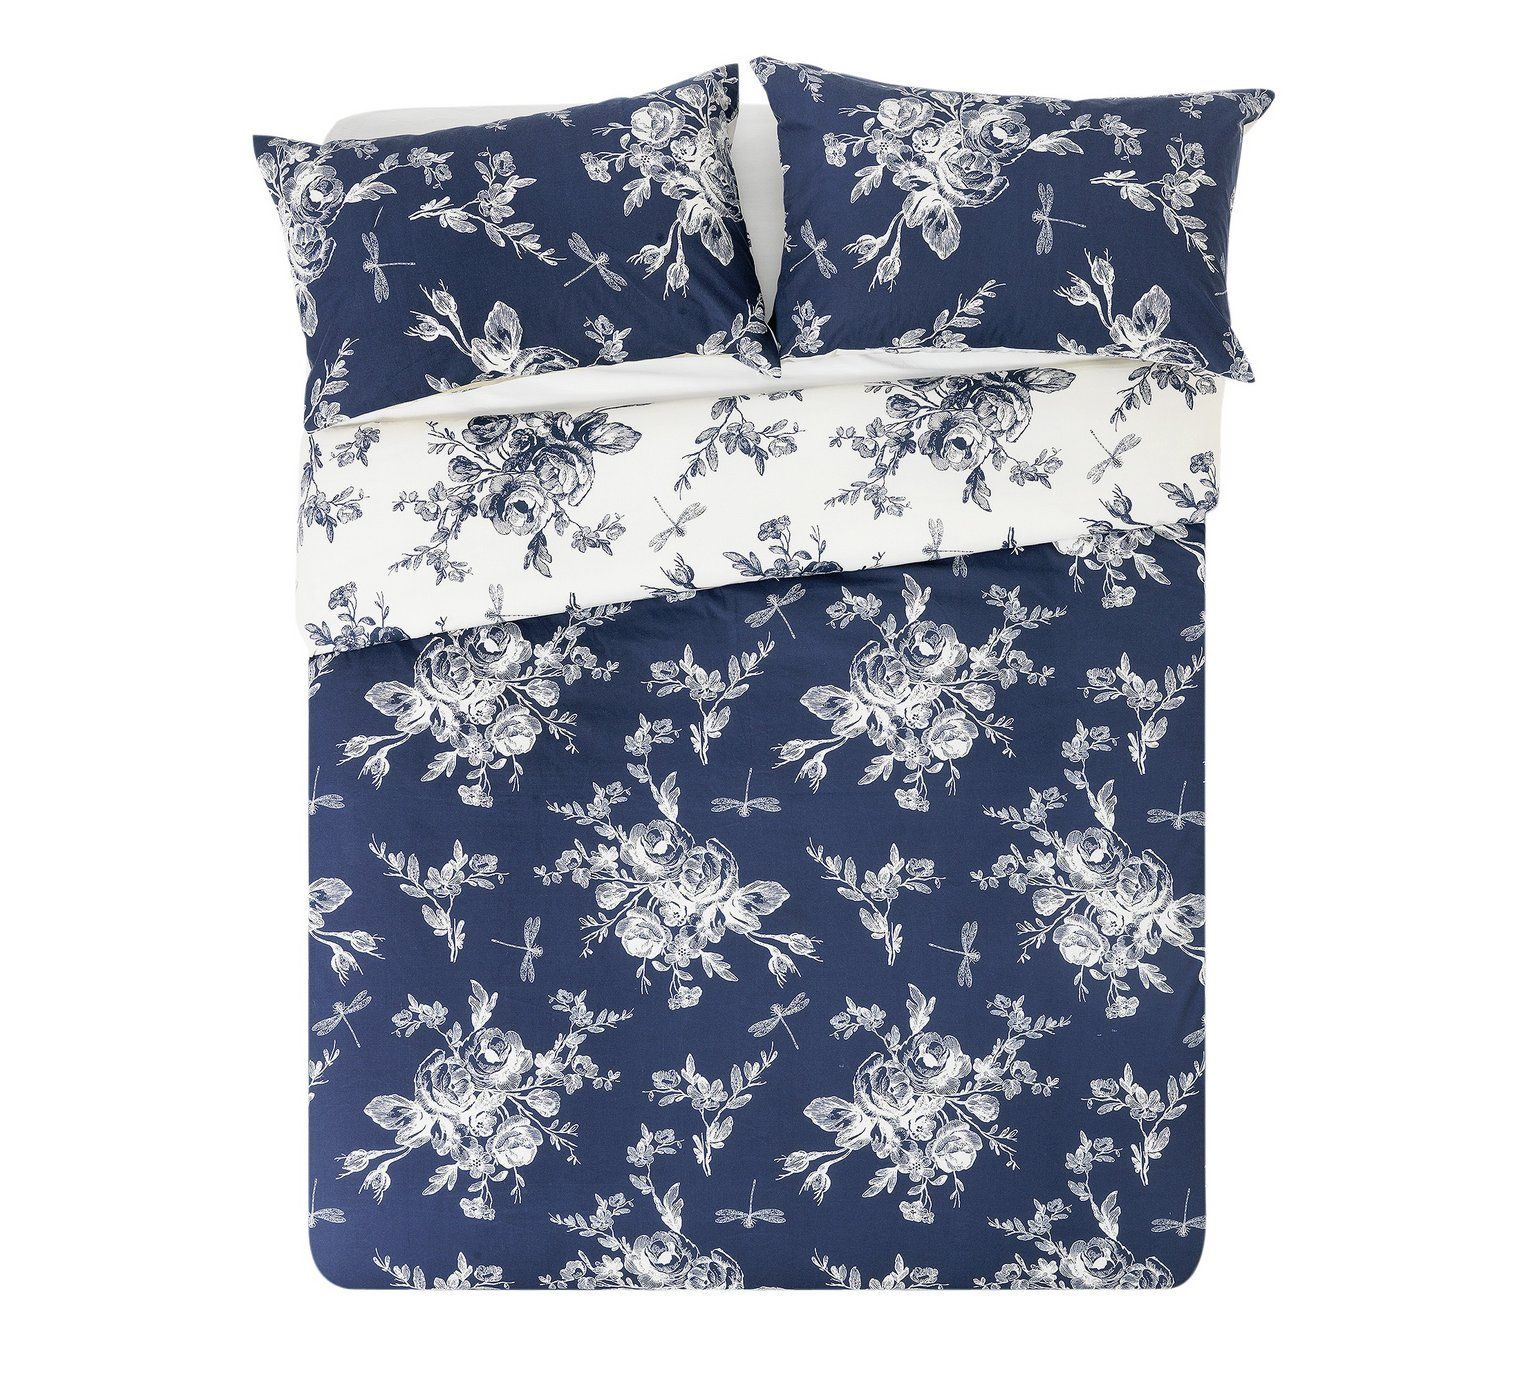 fee0f4b205a Buy Collection Lottie Blue and Cream Bedding Set - Double at Argos.co.uk -  Your Online Shop for Duvet cover sets